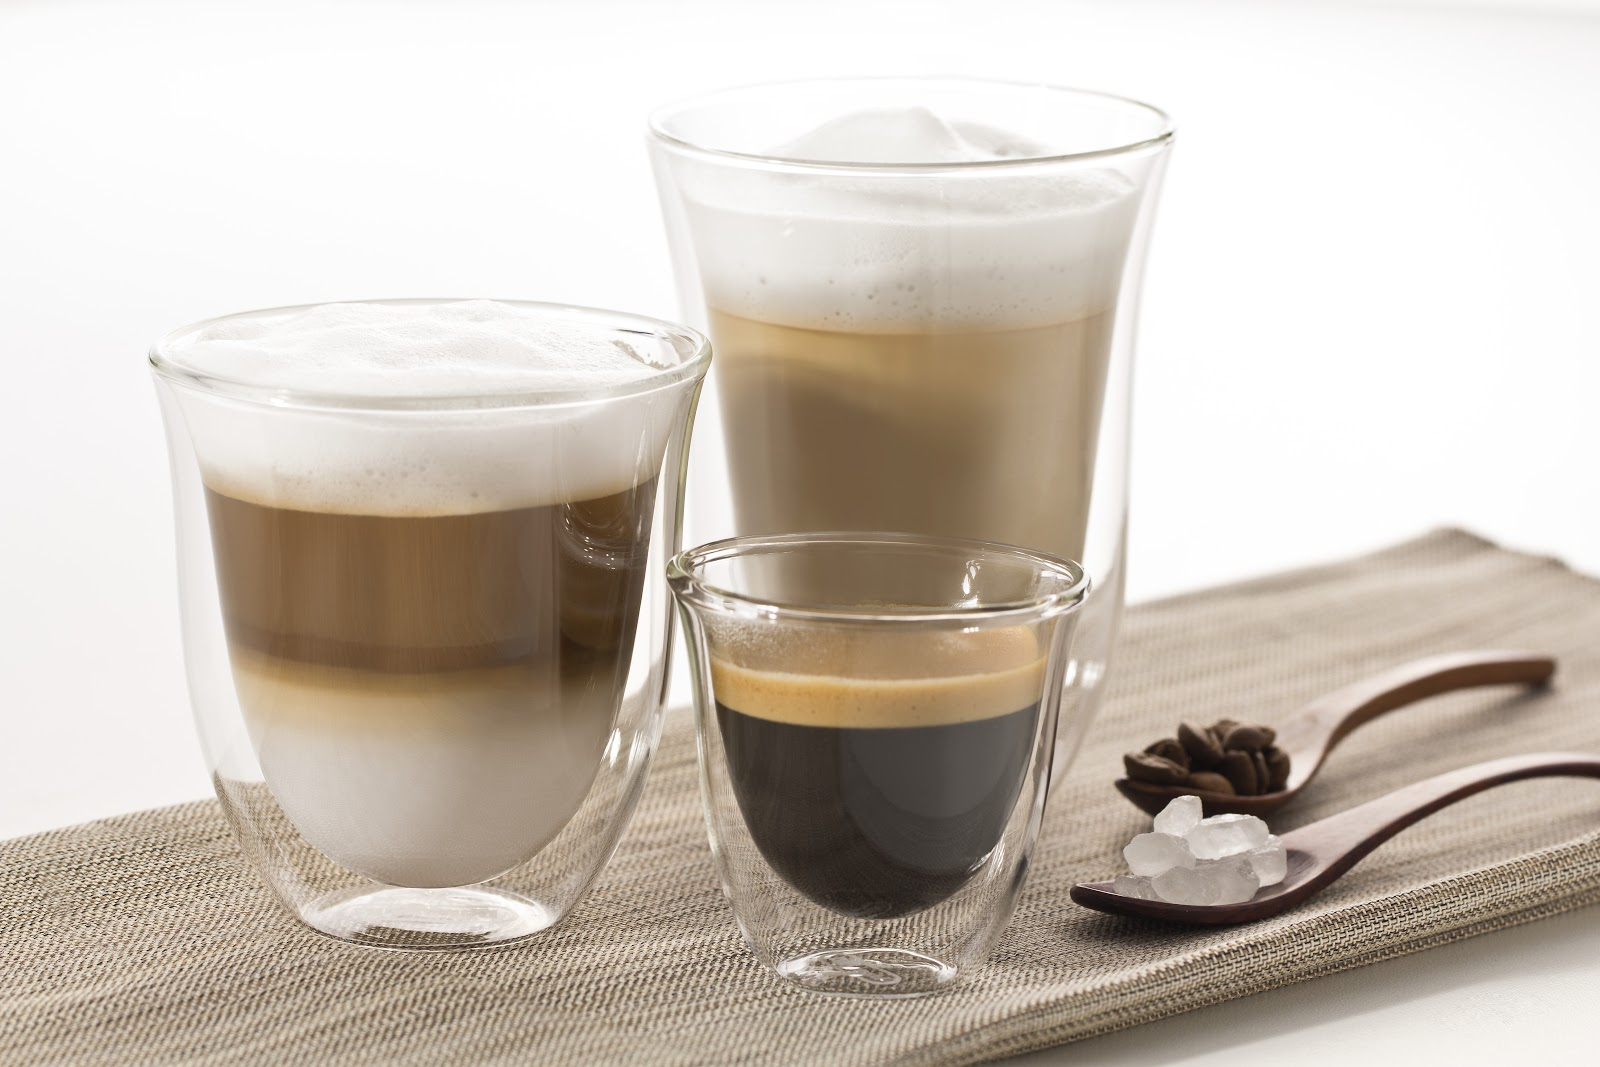 three different types of coffee - an espresso shot, latte, and cuppucino